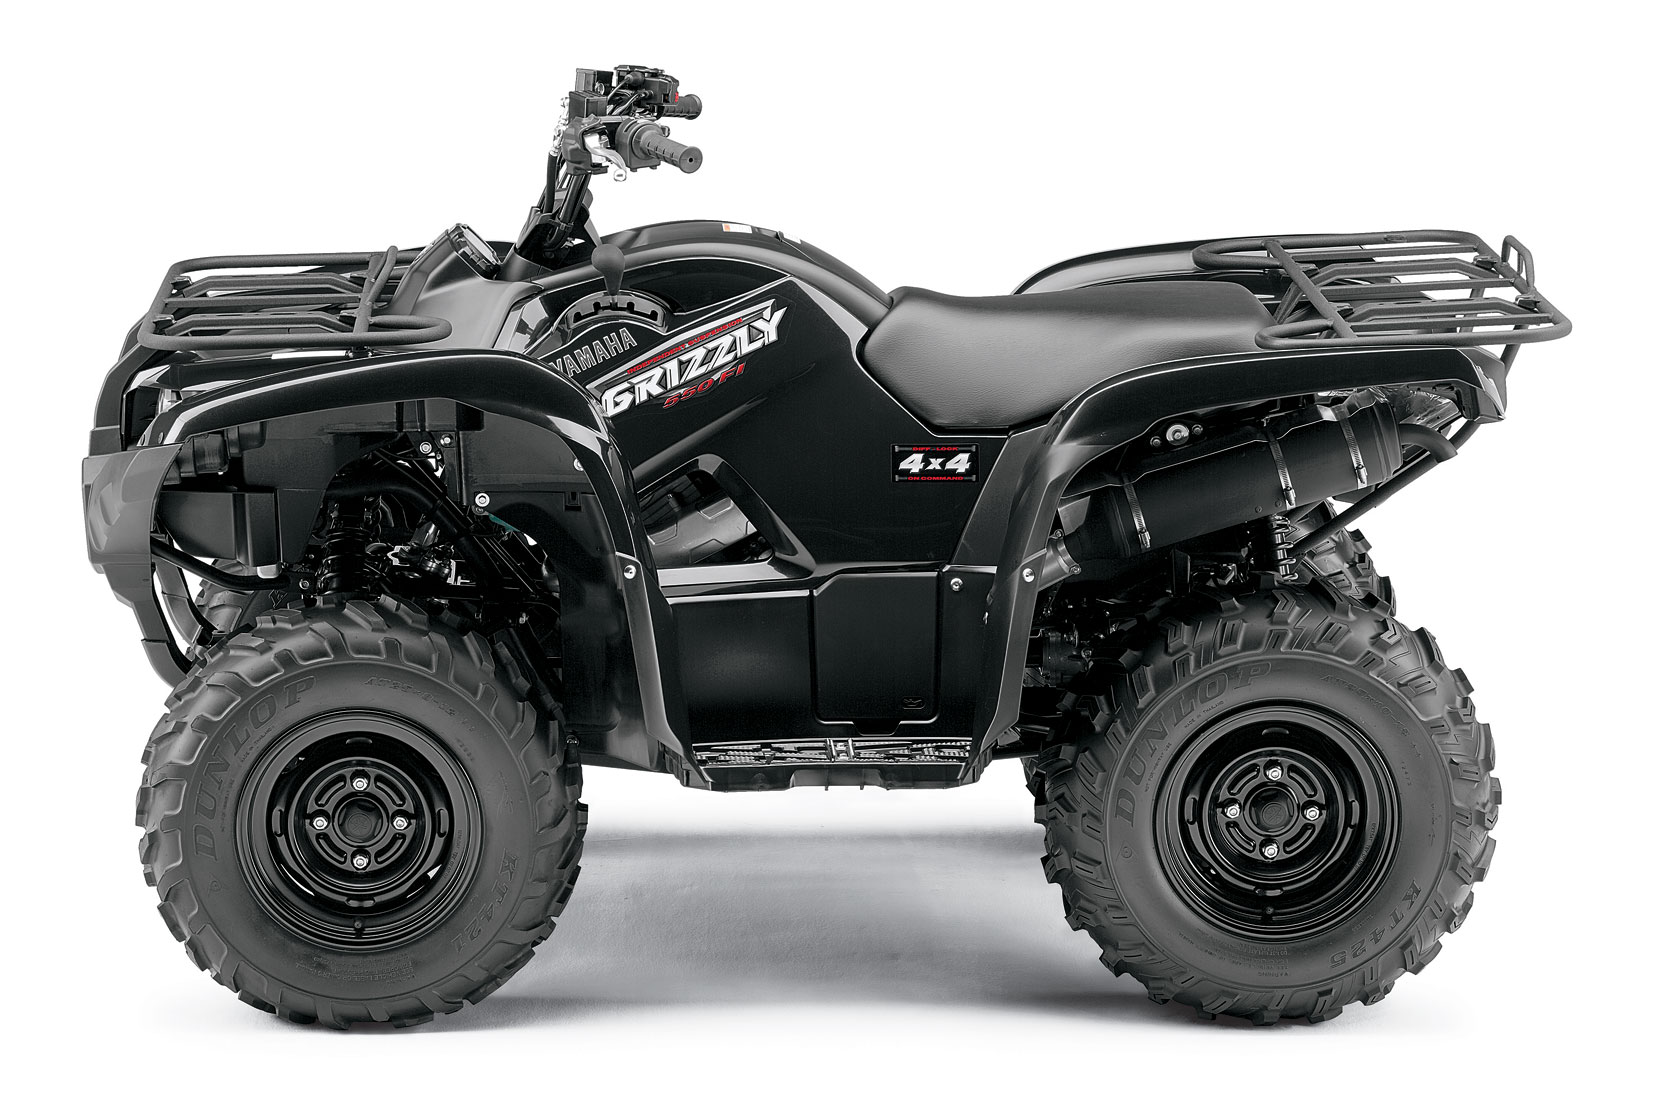 2009 yamaha grizzly 550 fi irs for 2009 yamaha grizzly 450 value